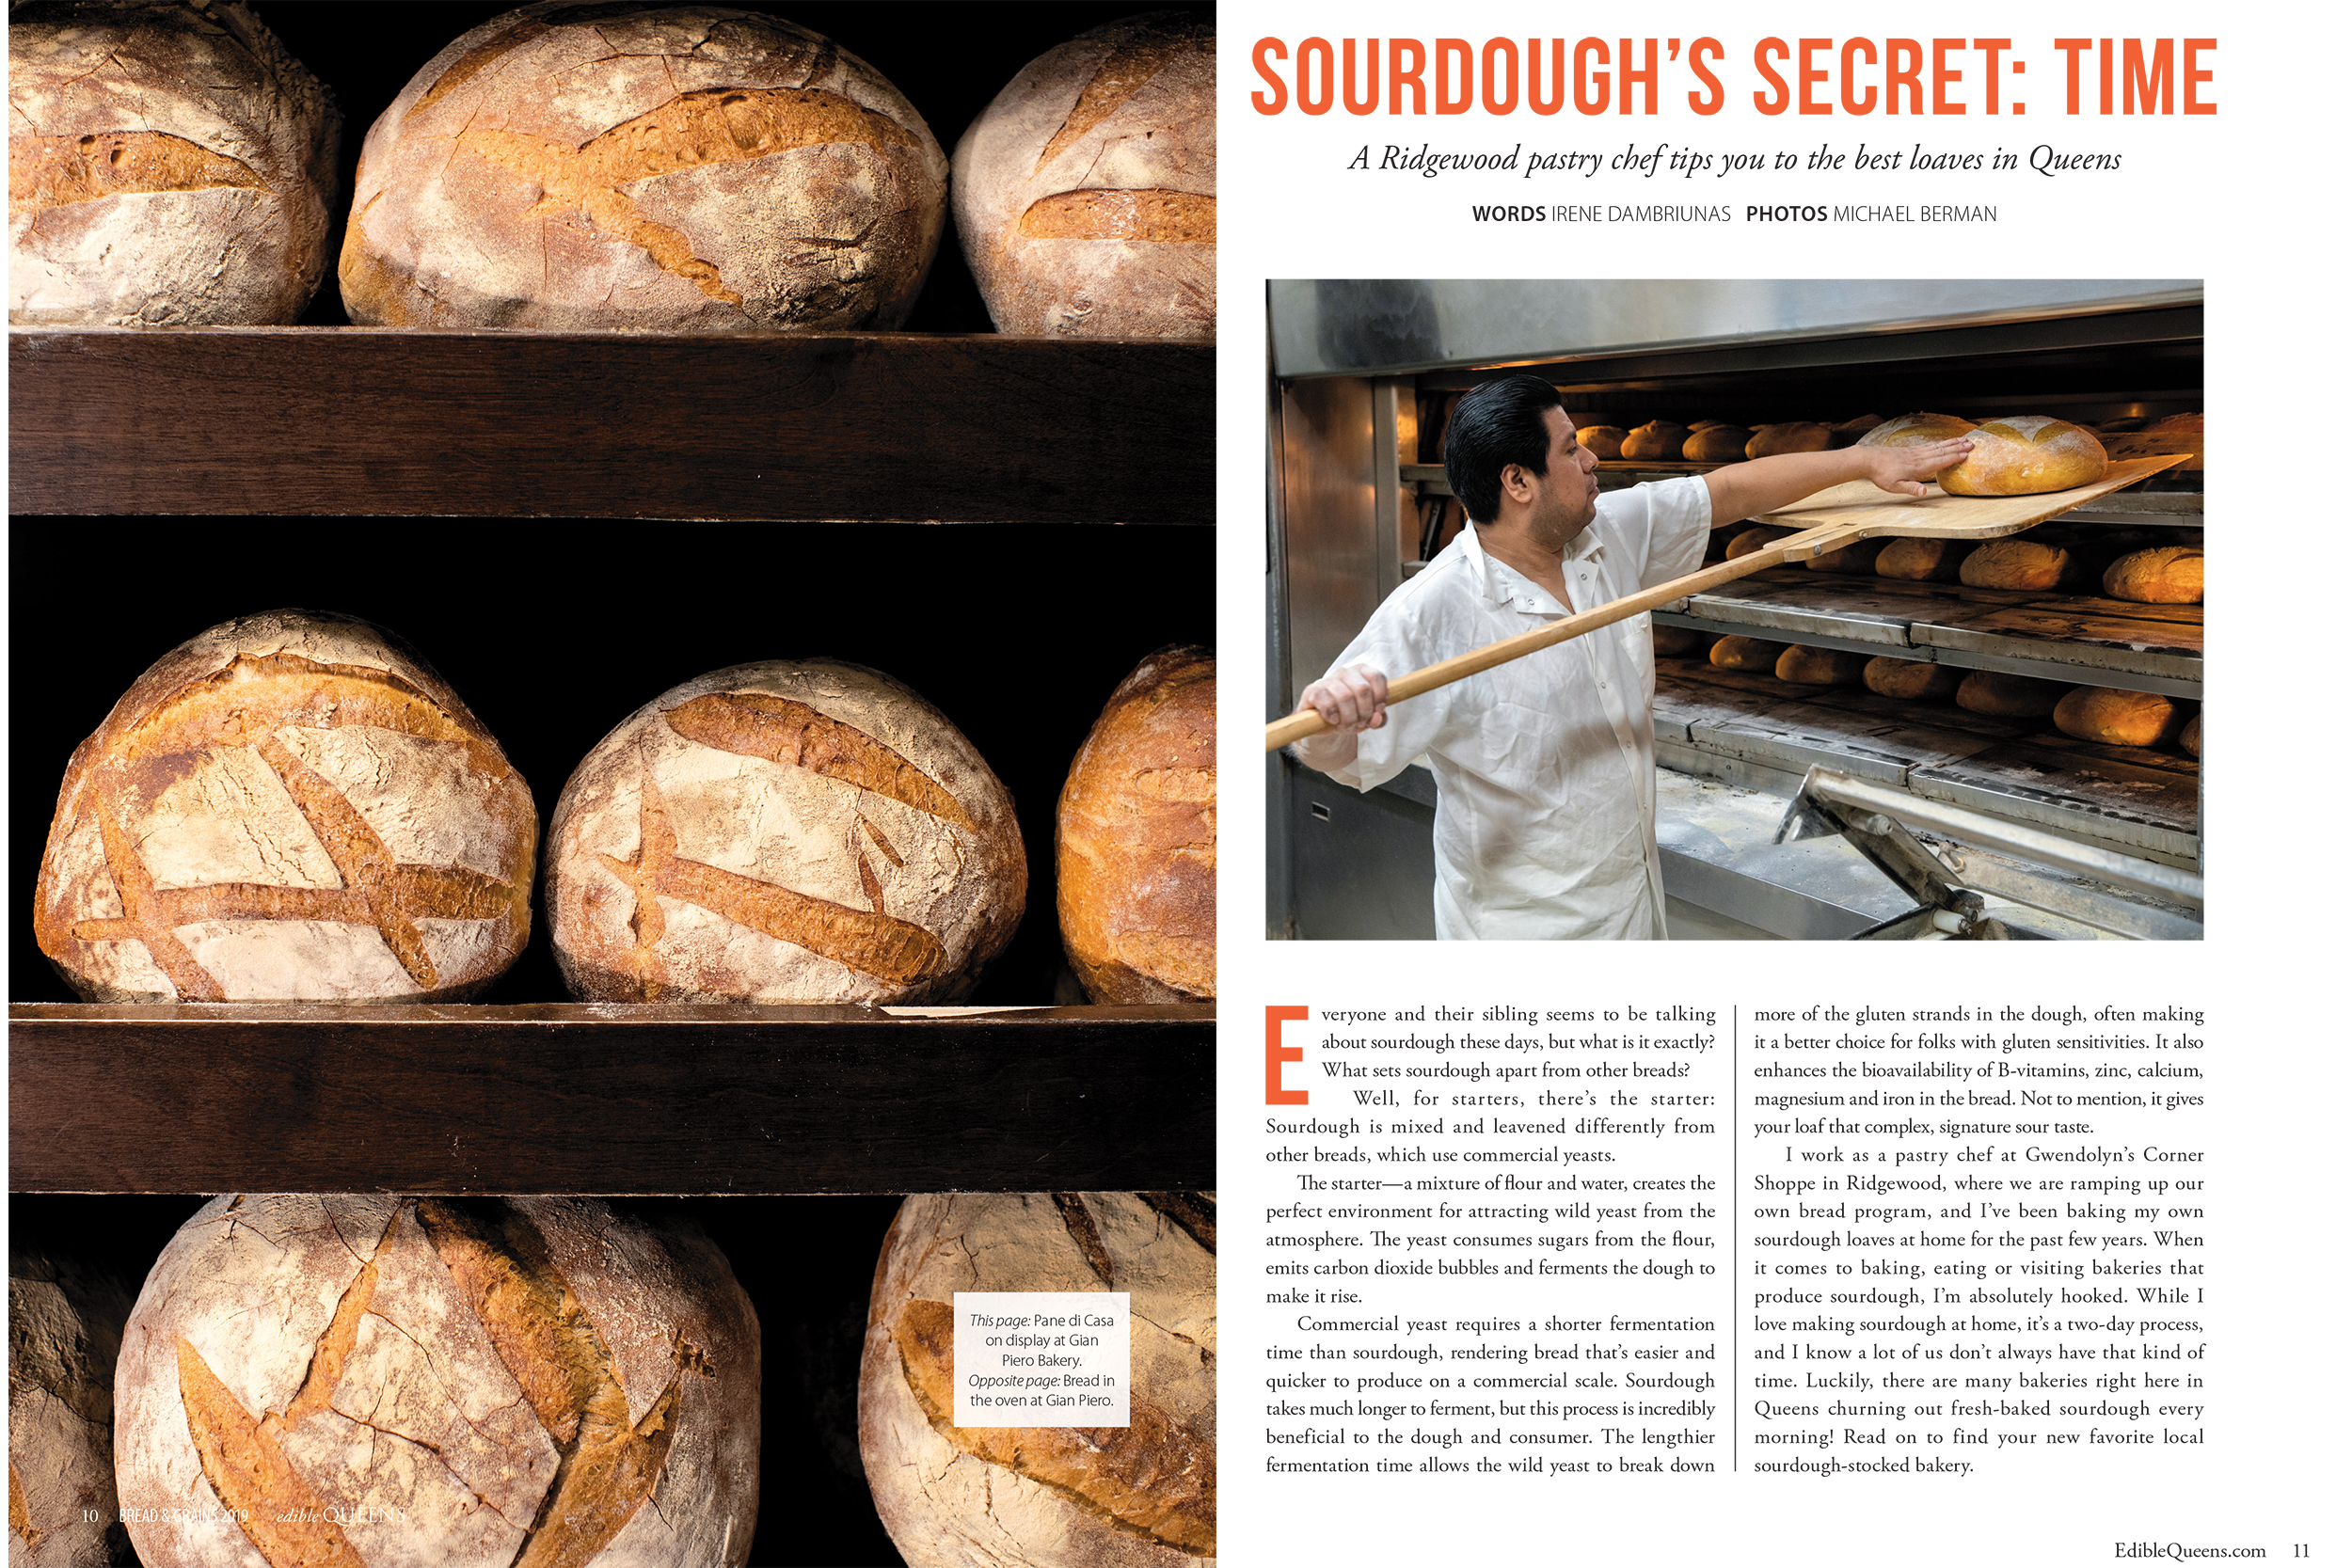 EQ-Winter-2019-Bread-Issue---Dambriunas-&-Berman---Sourdough's-Secret_Time-2.jpg